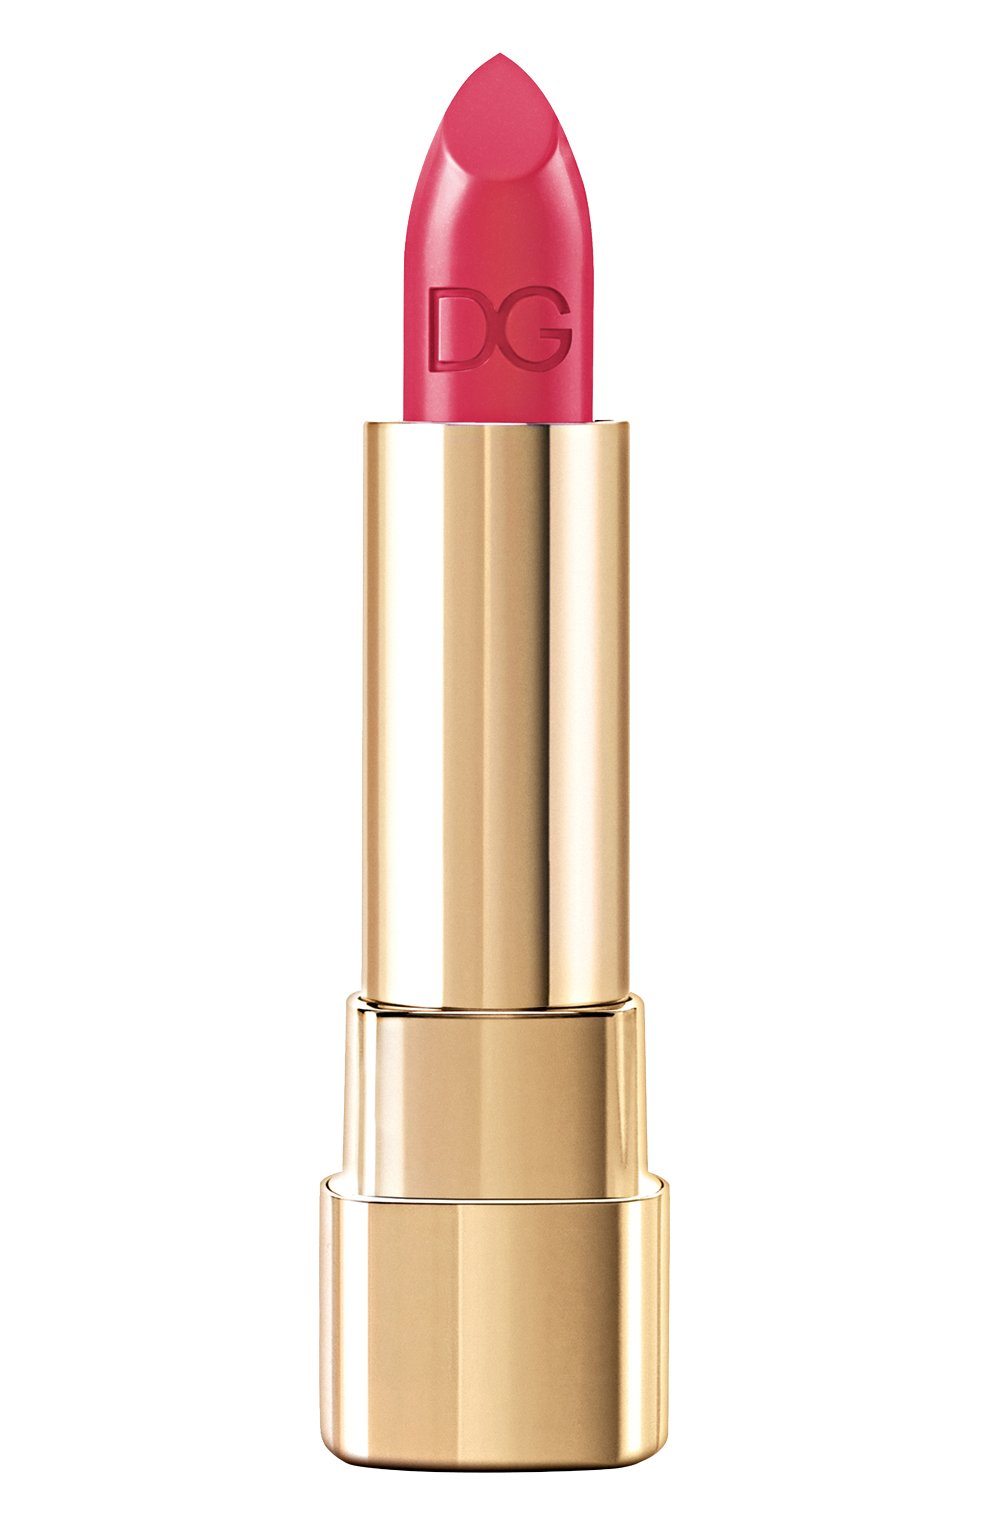 Губная помада Shine Lipstic, оттенок 150 тон Fuchsia Dolce & Gabbana | Фото №1